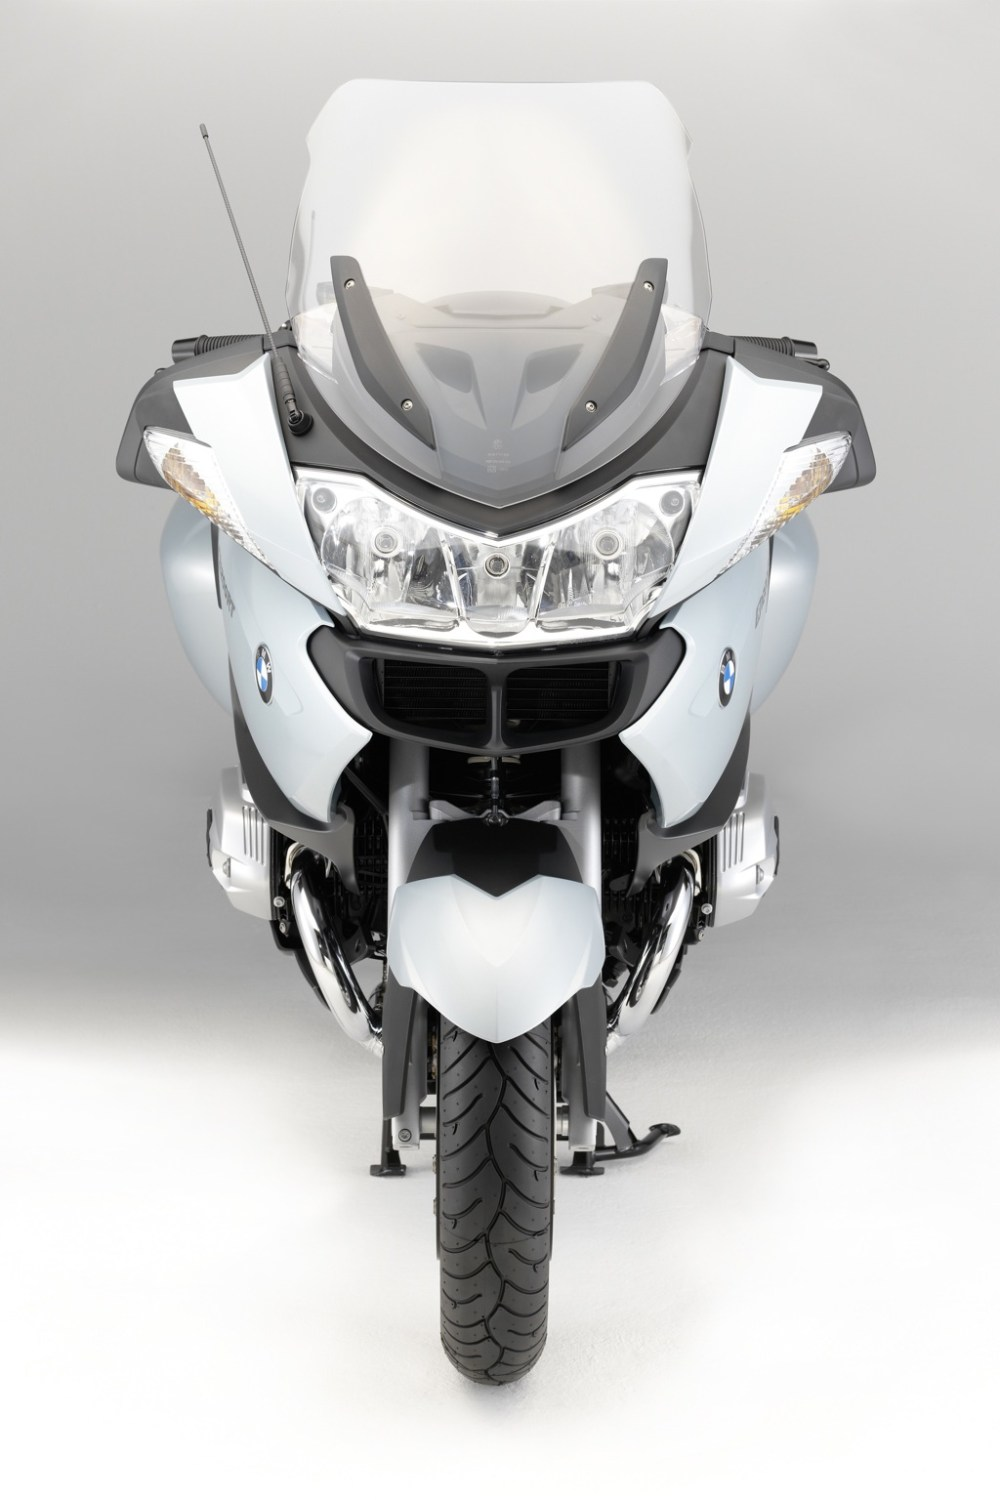 medium resolution of german motorcycle manufacturer bmw had just released full details and photos on the updated versions of 2010 bmw r 1200 rt